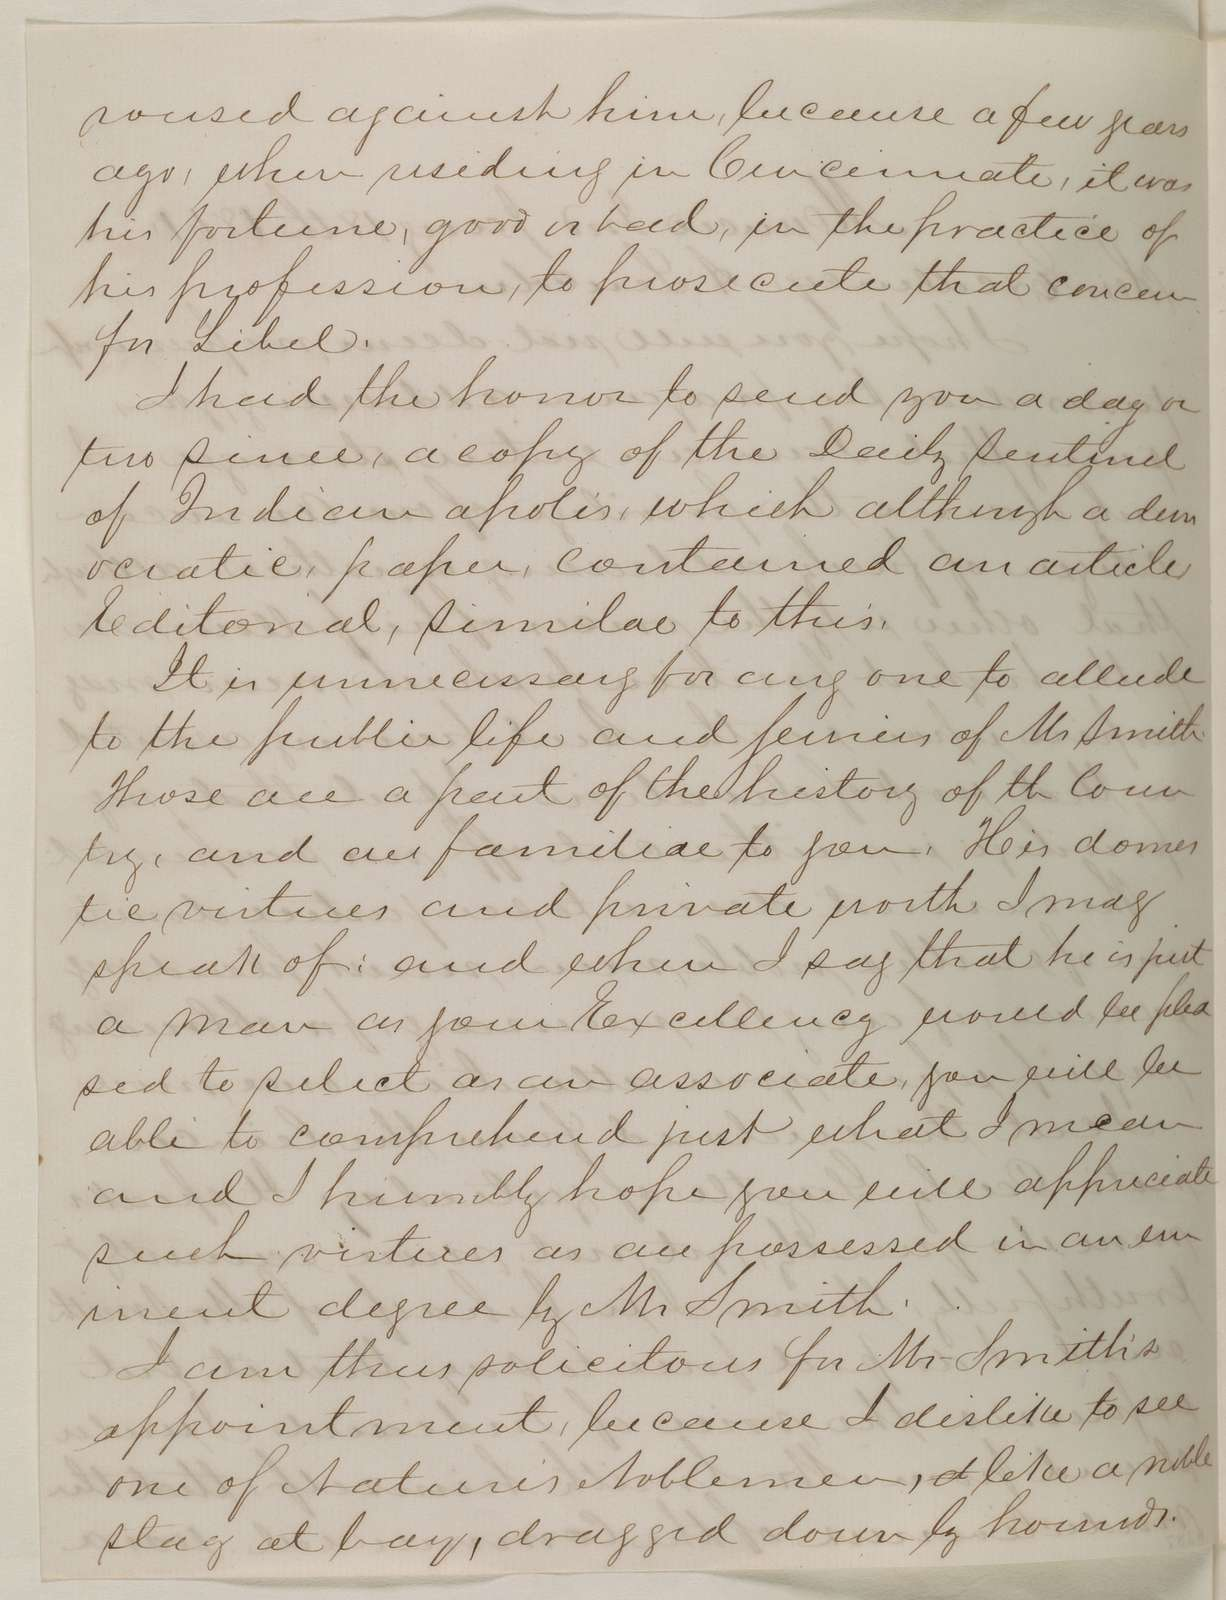 Abraham Lincoln papers: Series 1. General Correspondence. 1833-1916: Thomas J. Sample to Abraham Lincoln, Friday, January 18, 1861 (Recommends Caleb Smith)